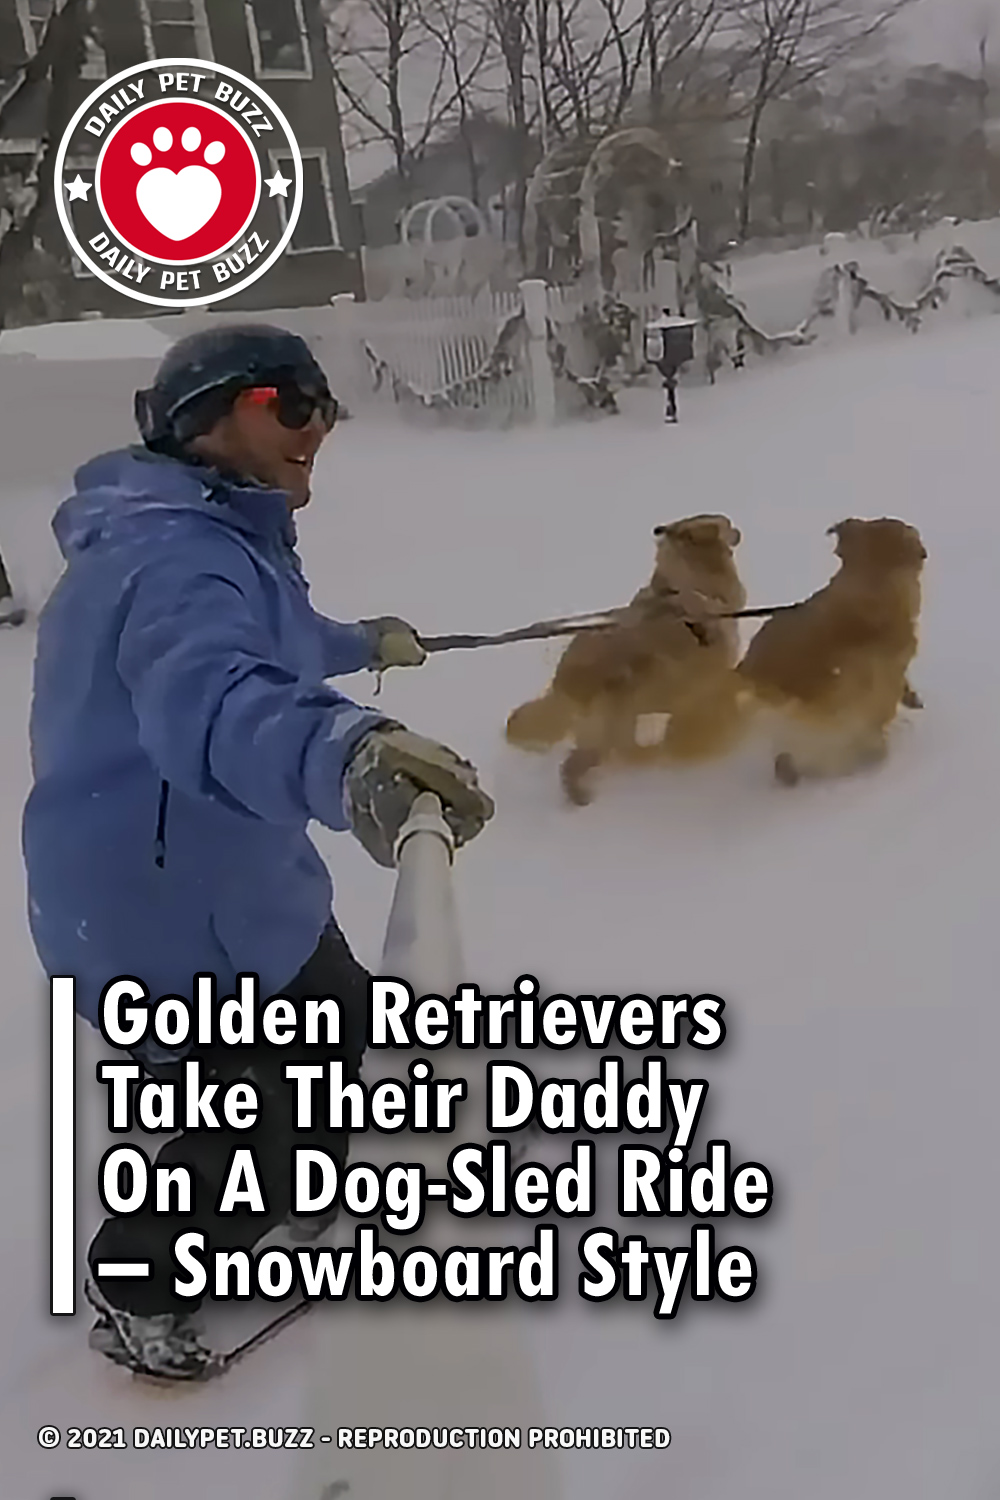 Golden Retrievers Take Their Daddy On A Dog-Sled Ride – Snowboard Style